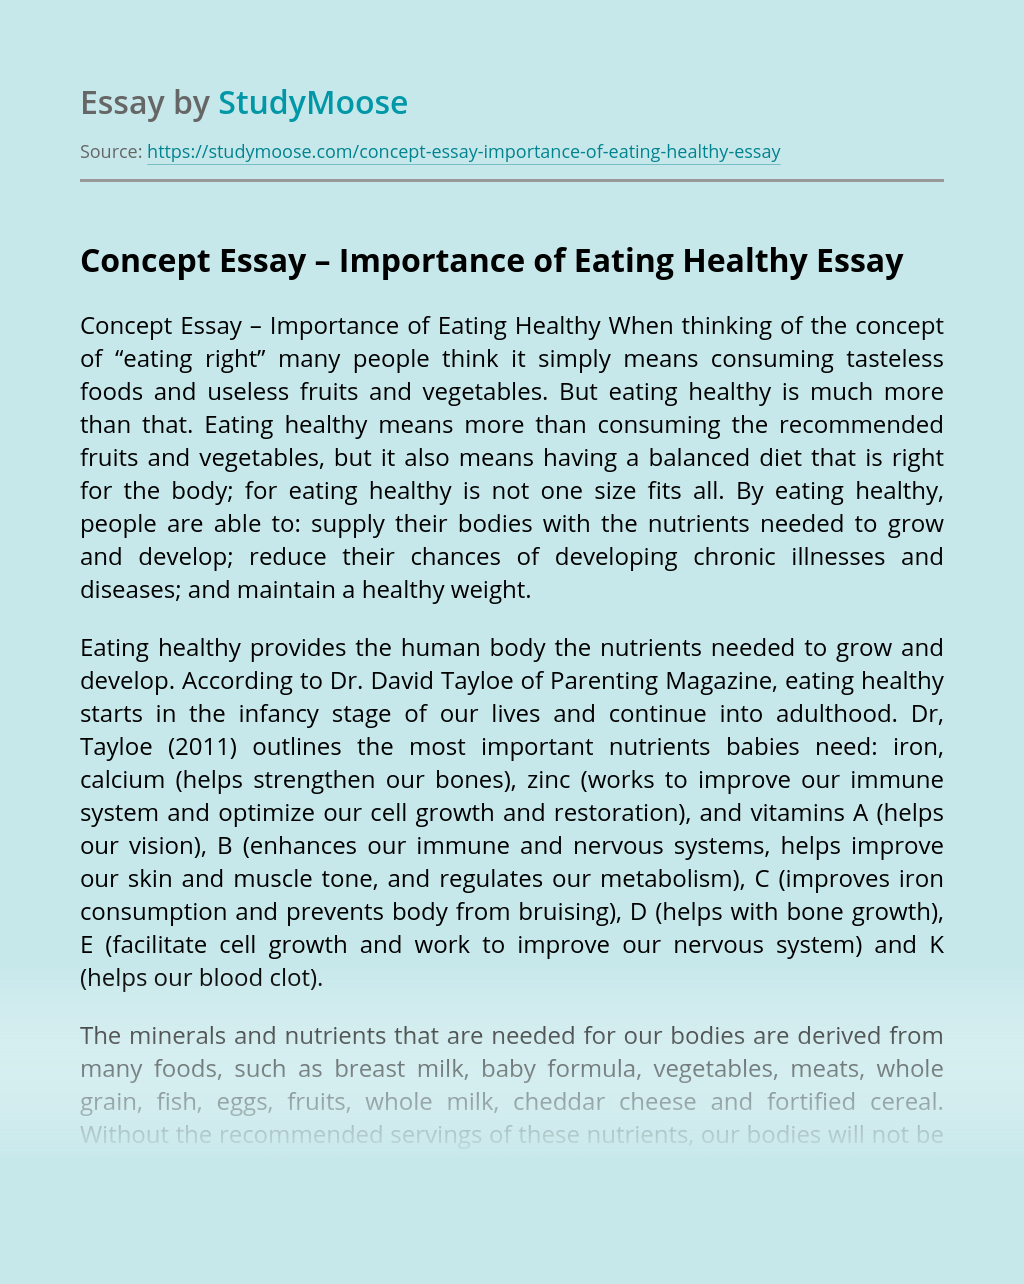 Concept Essay – Importance of Eating Healthy